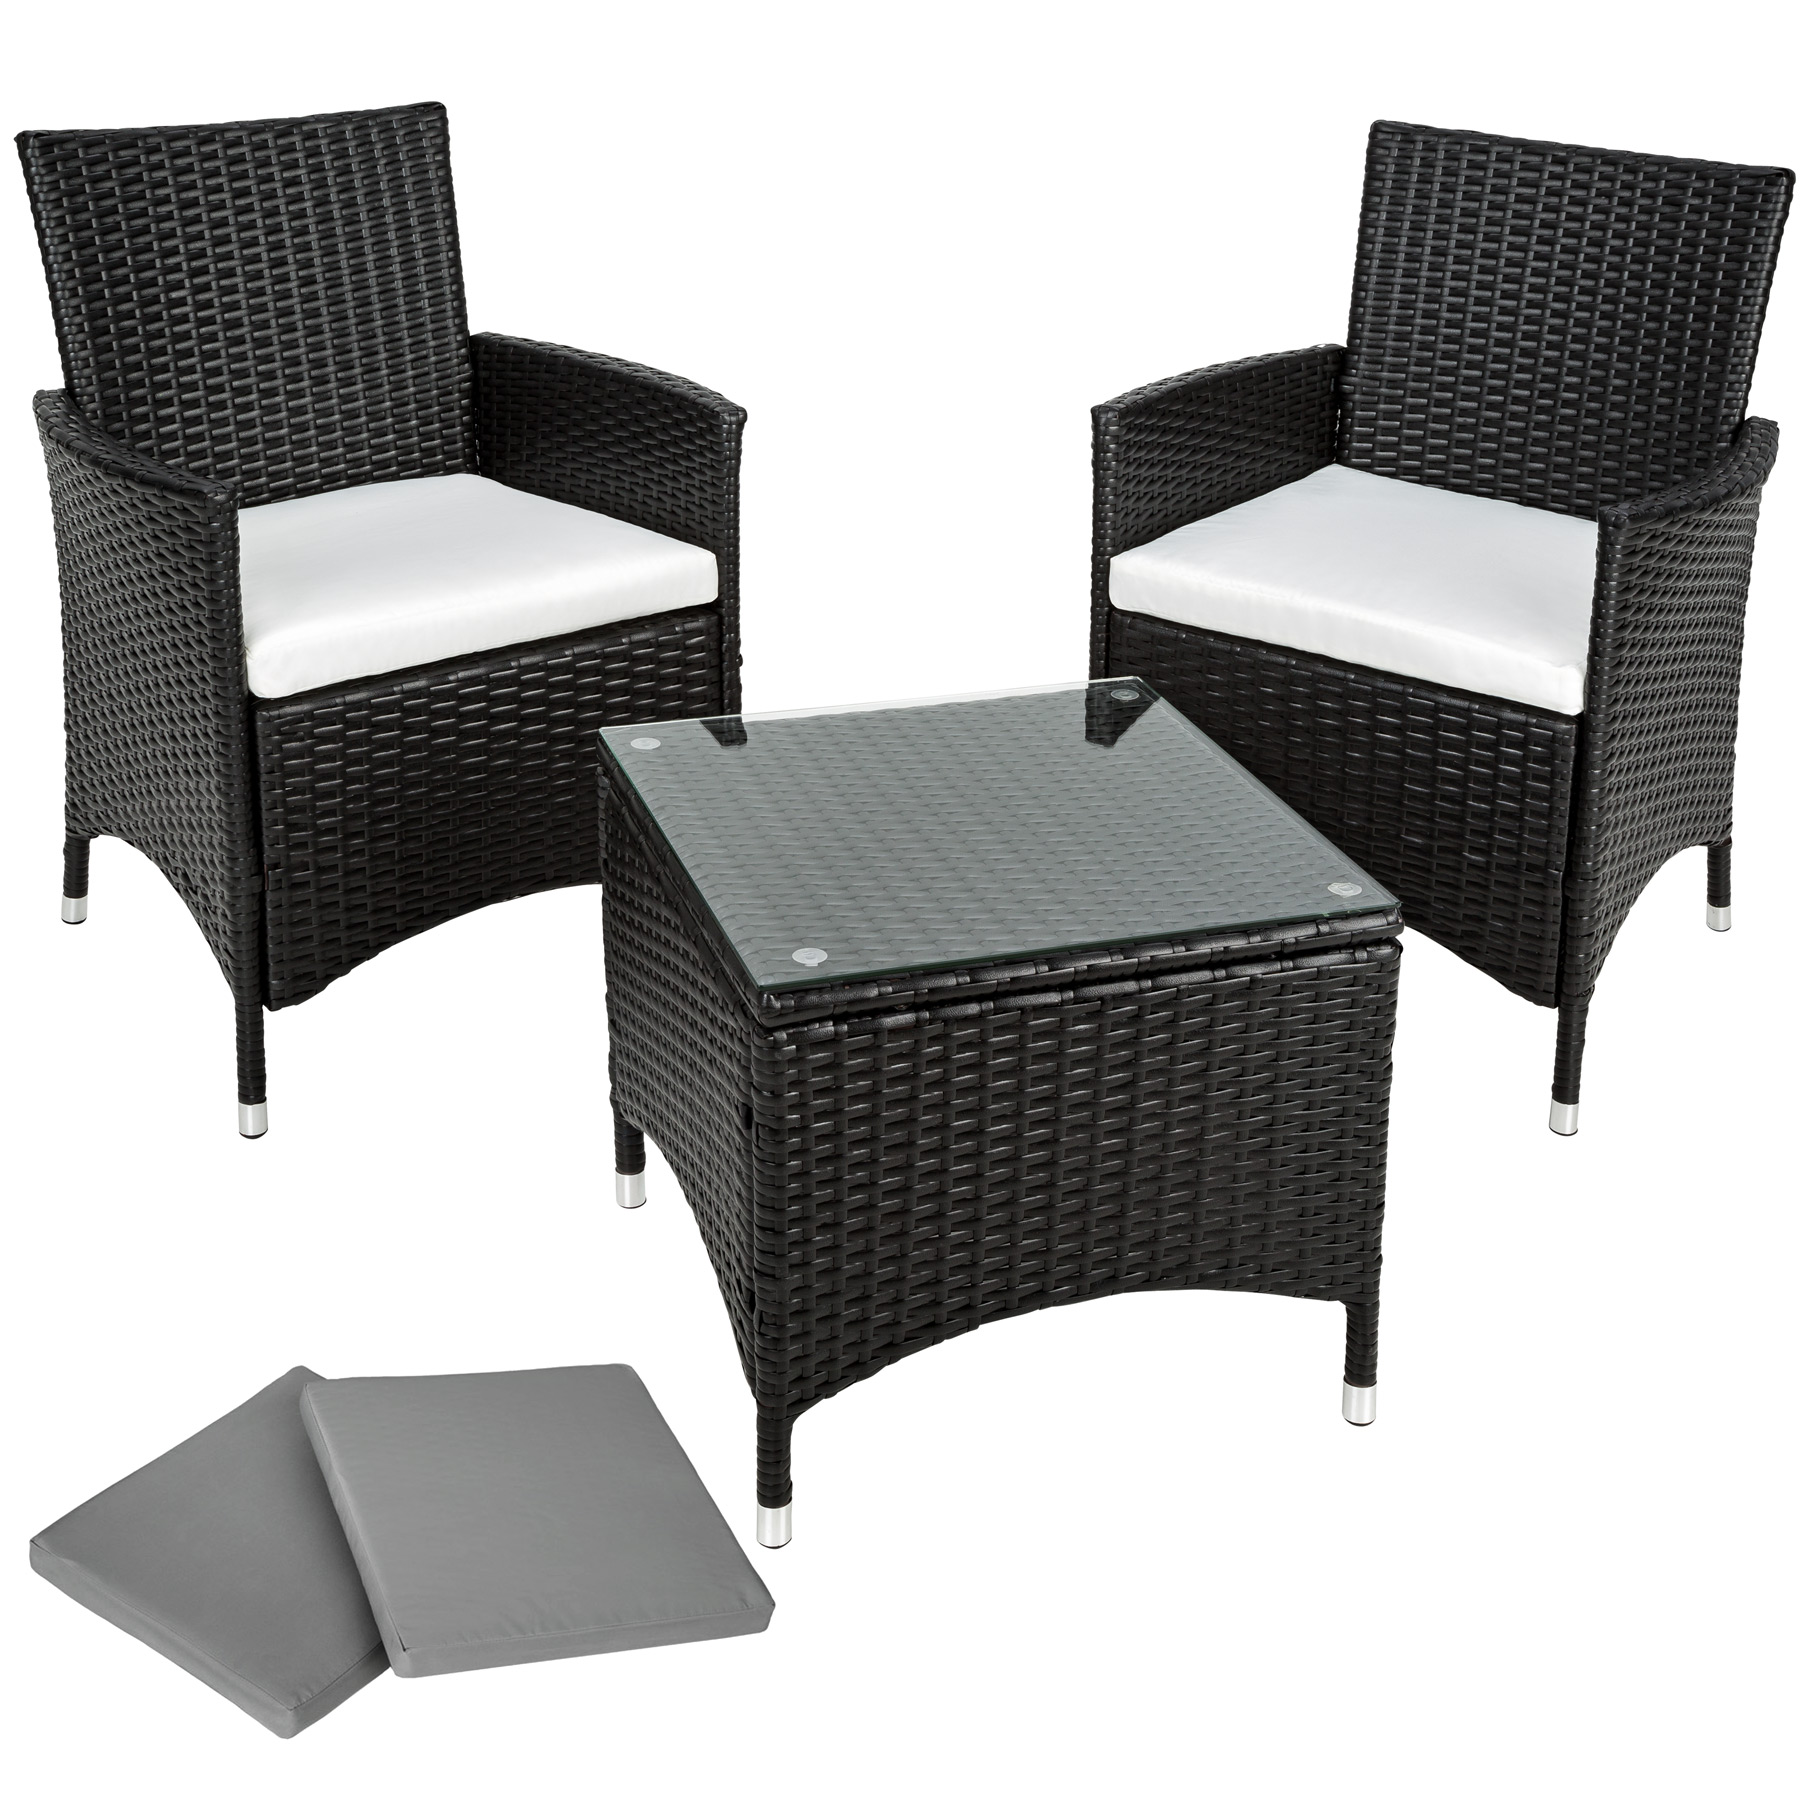 Salon de jardin chaises table basse noir en r sine tress e poly rotin alumini - Table basse resine tressee noir ...